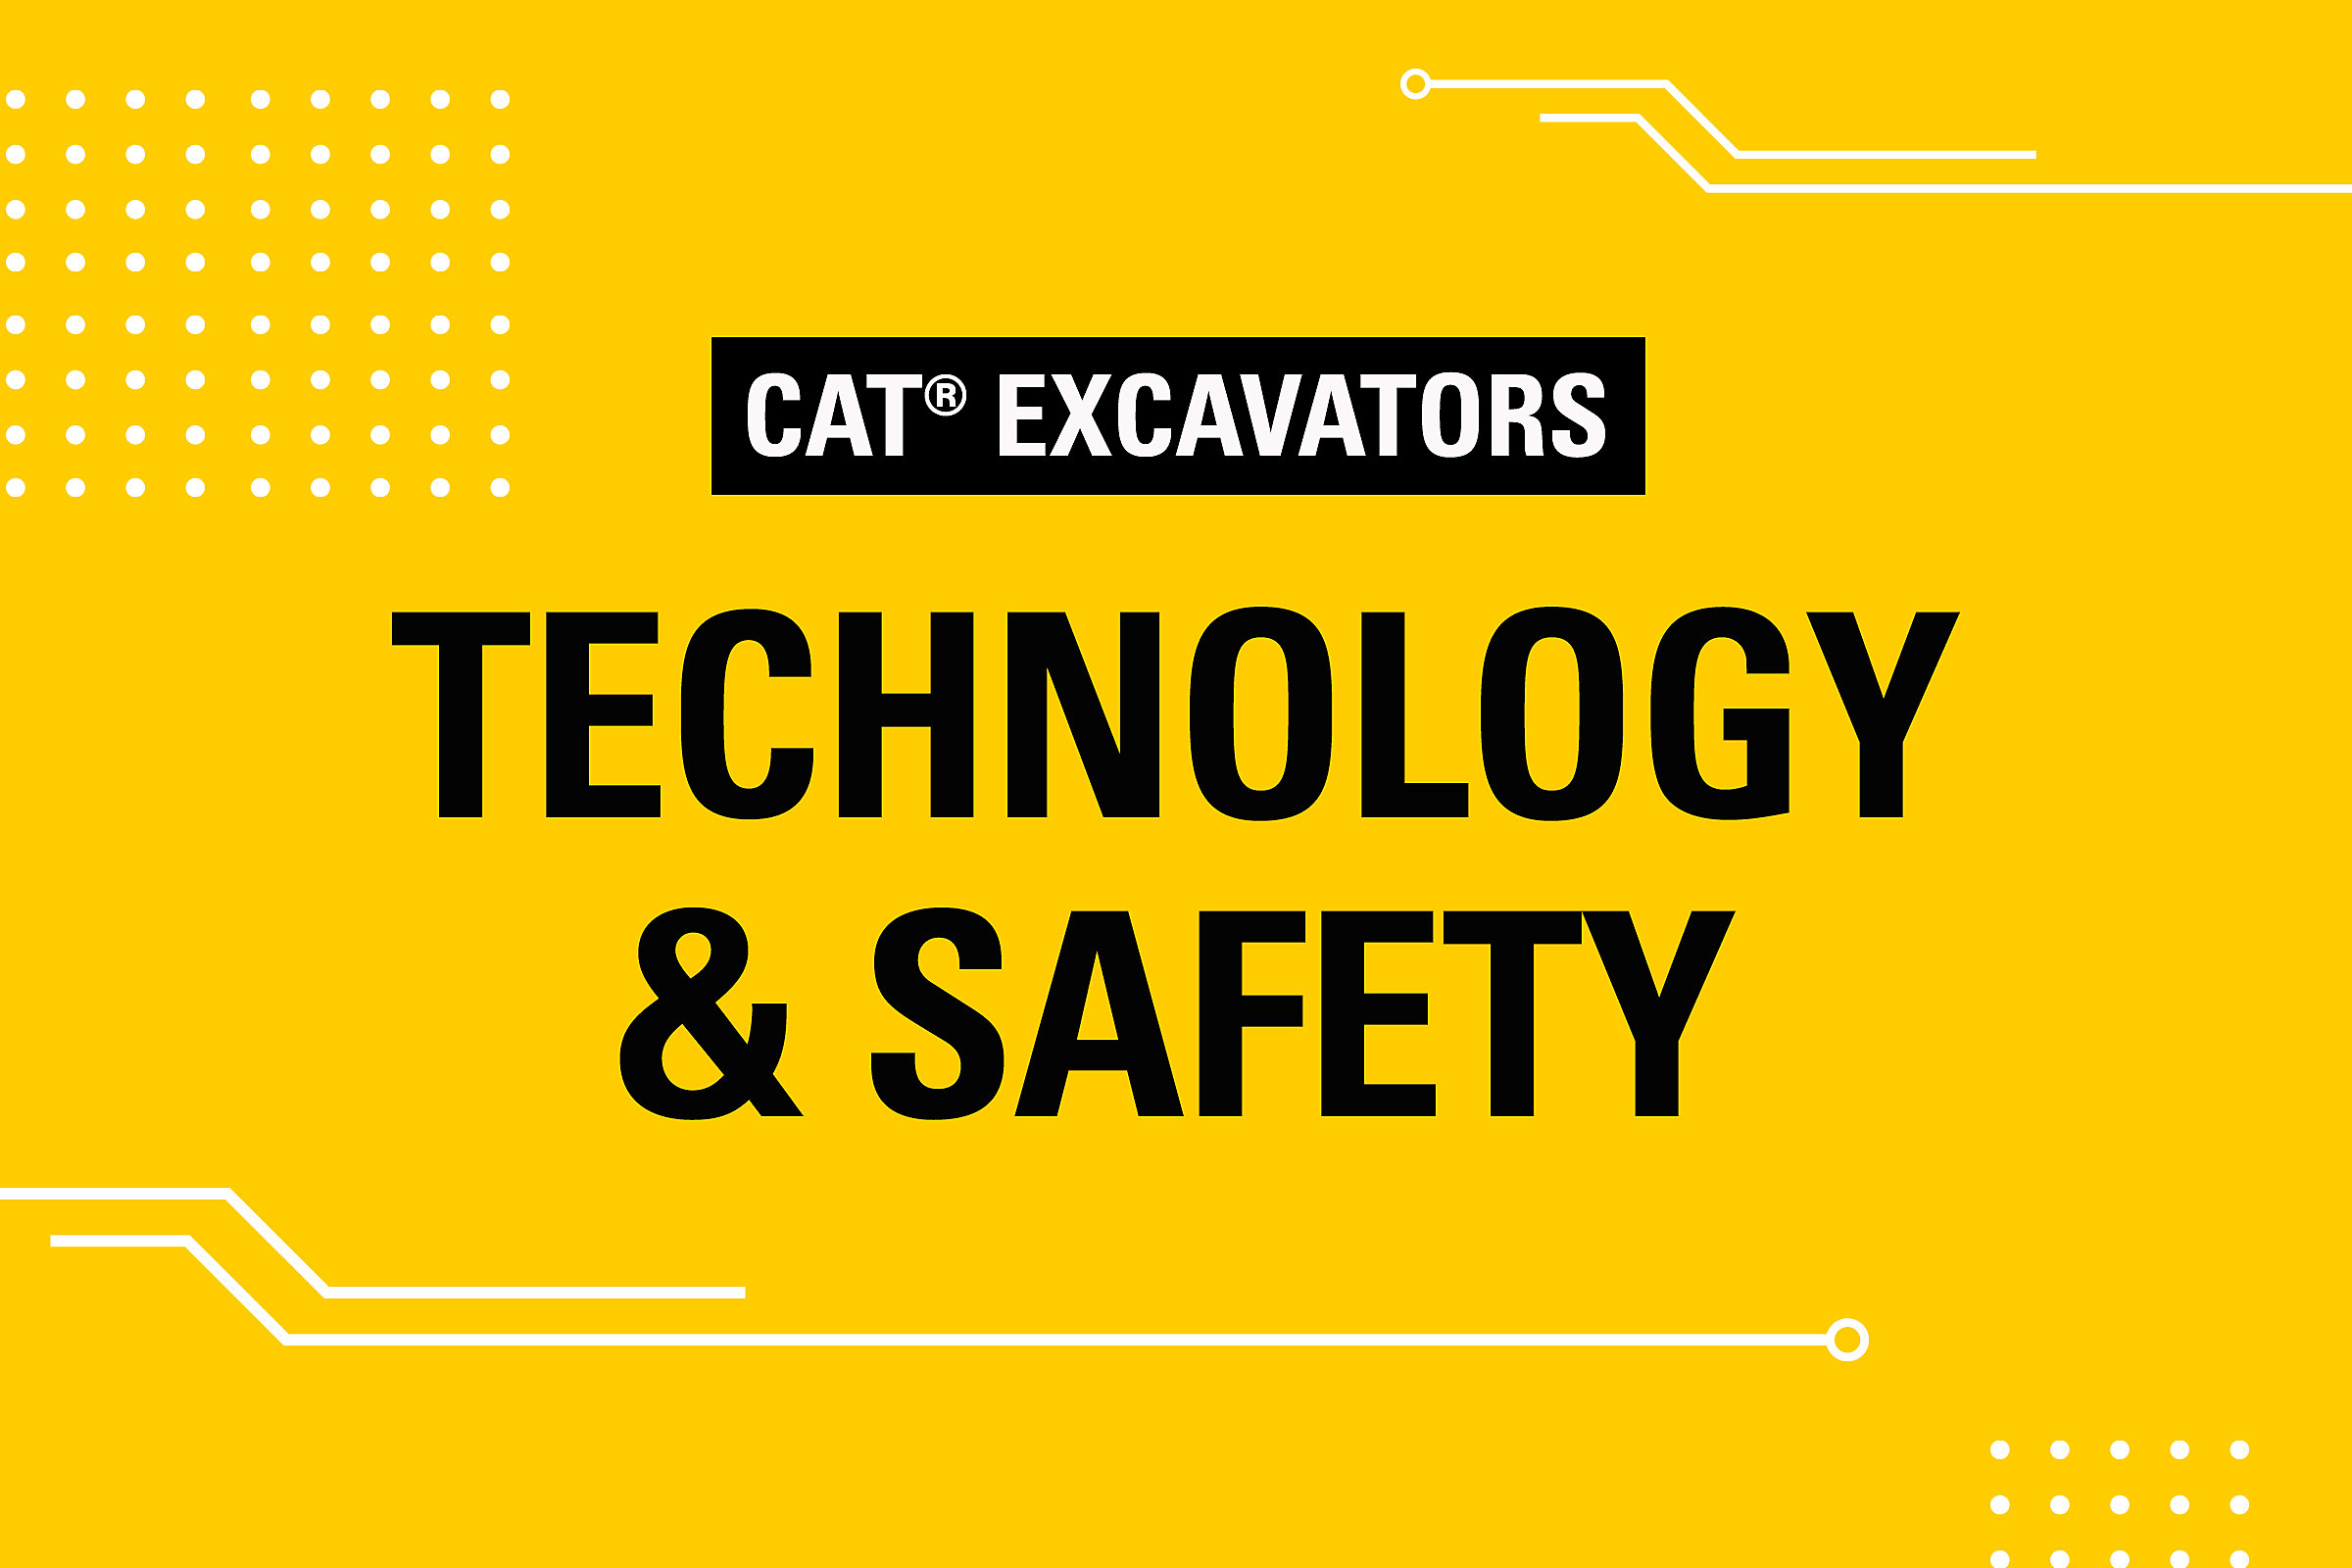 Excavators Technology & Safety